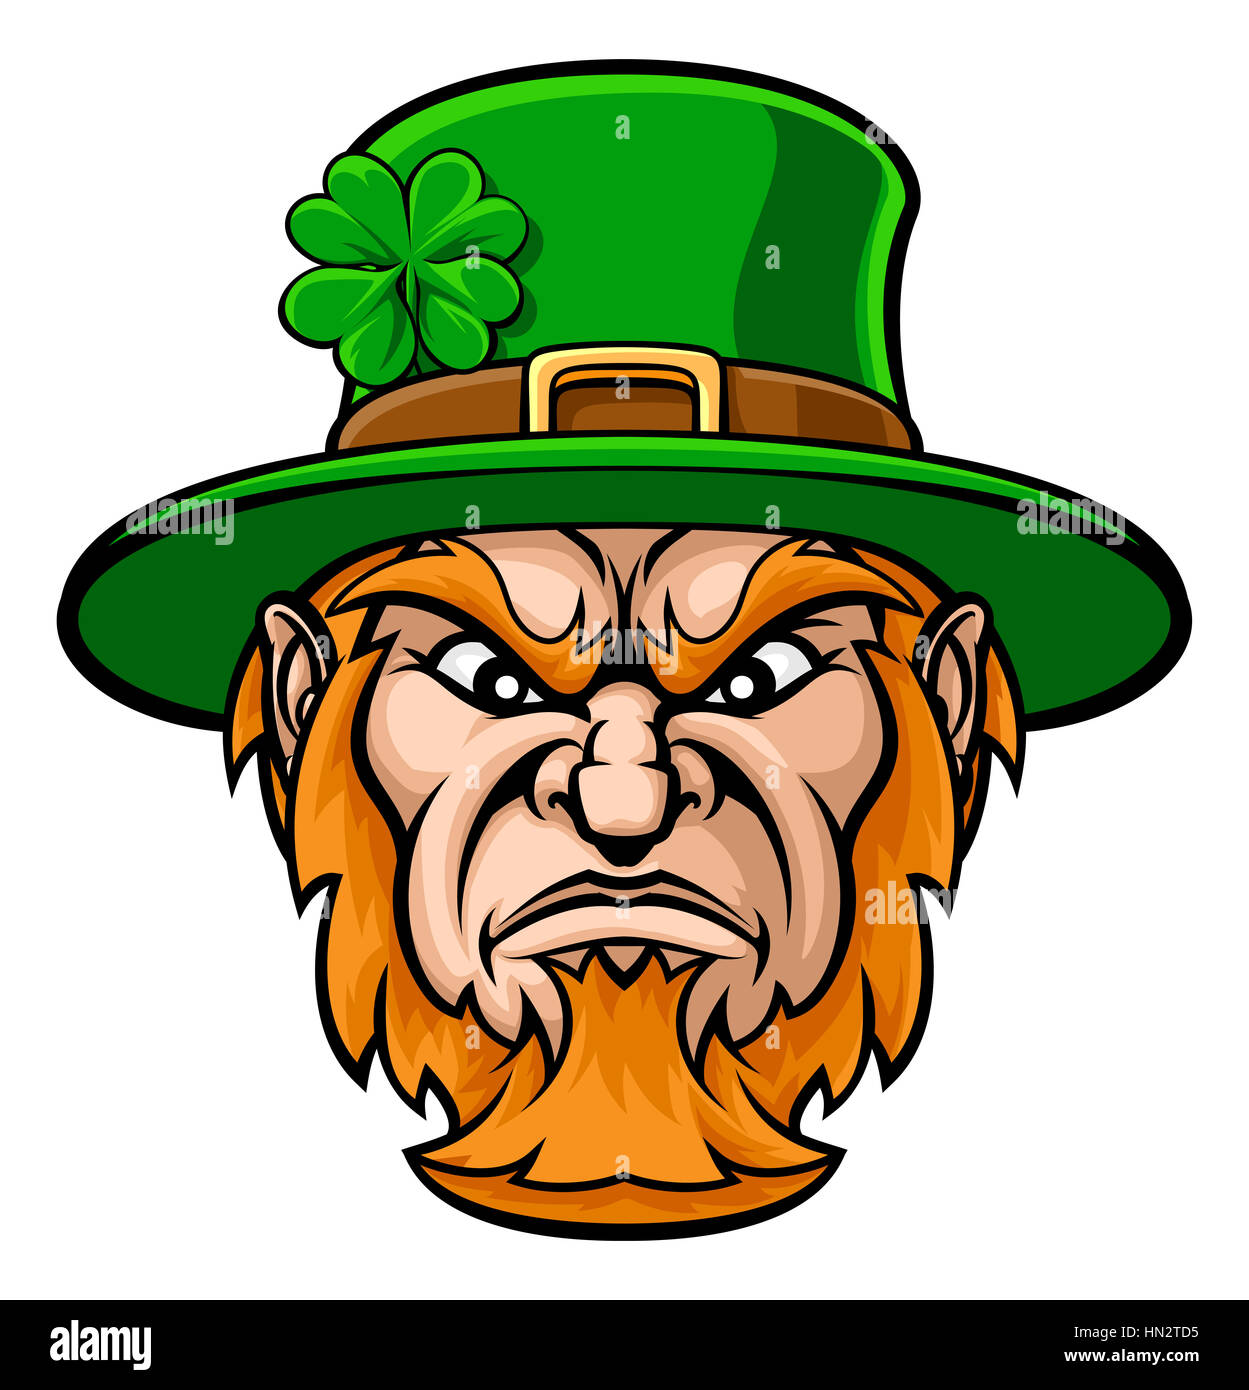 Tough cartoon leprechaun st patricks day character or sports mascot tough cartoon leprechaun st patricks day character or sports mascot altavistaventures